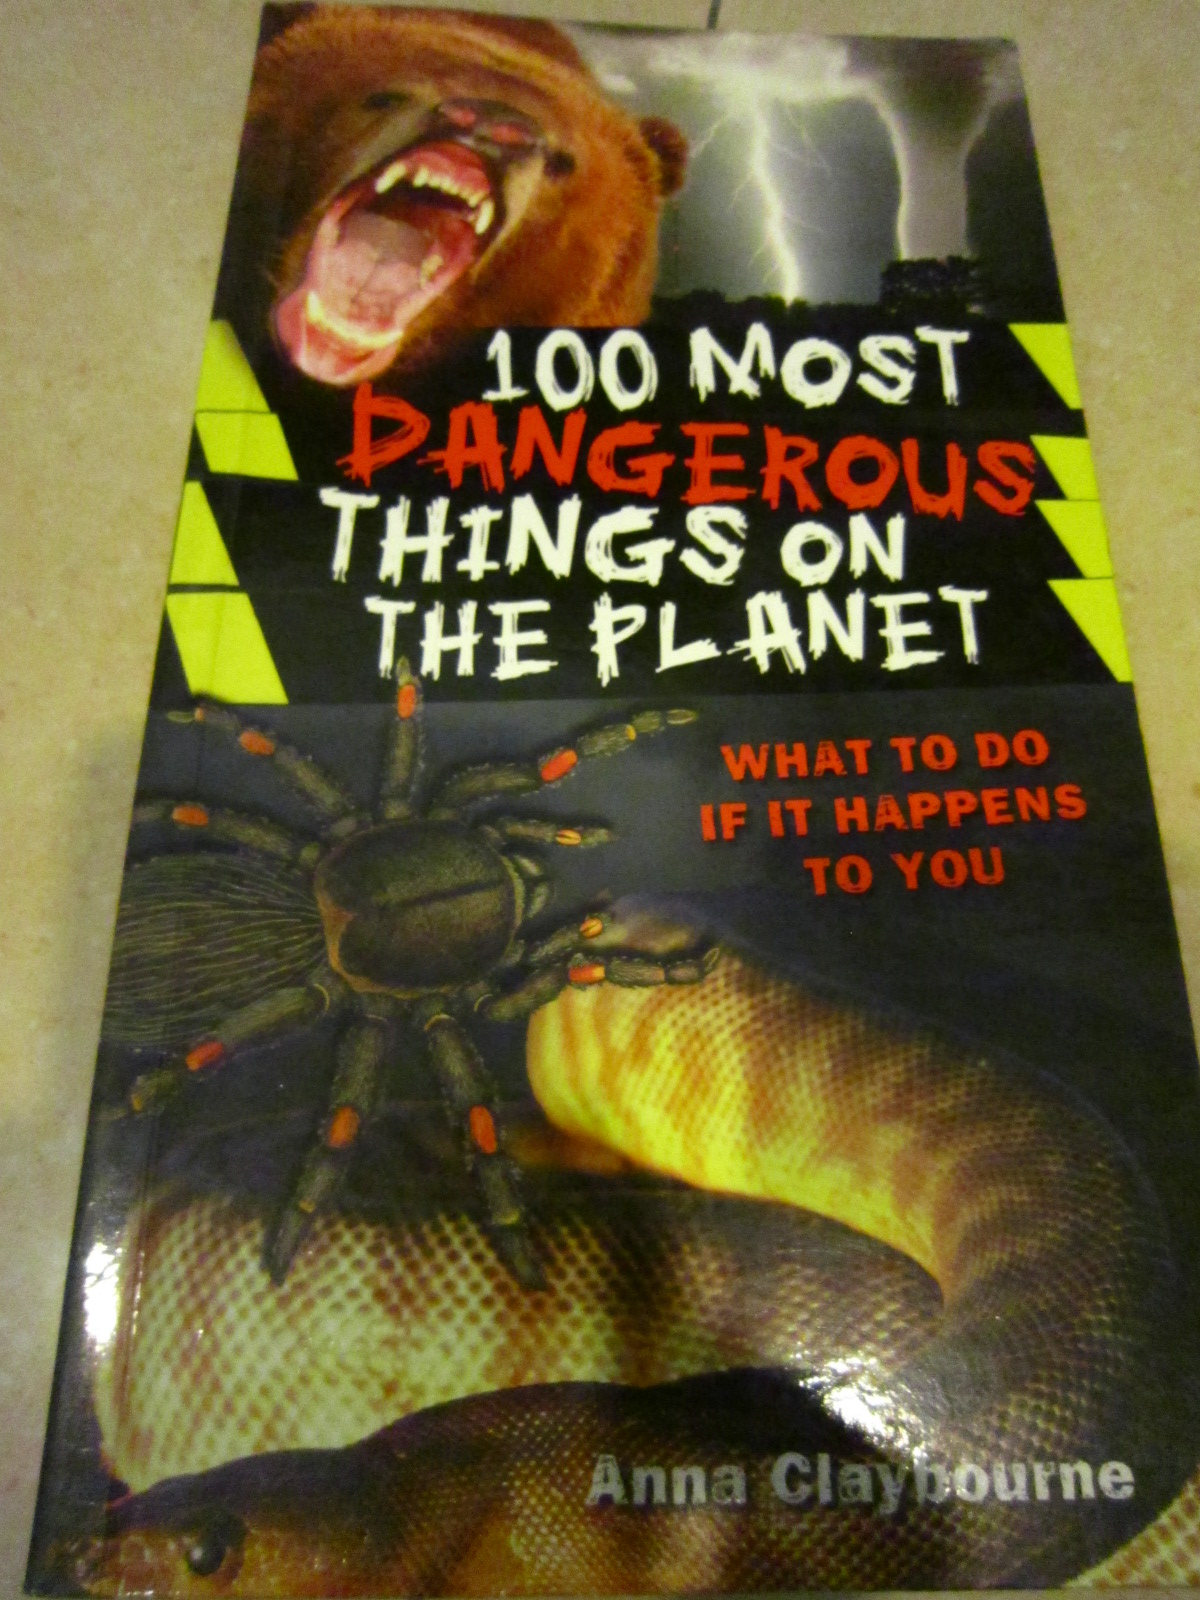 ES14 - 100 Most Dangerous Things on the Planet RM15 (Original price US$7.99)